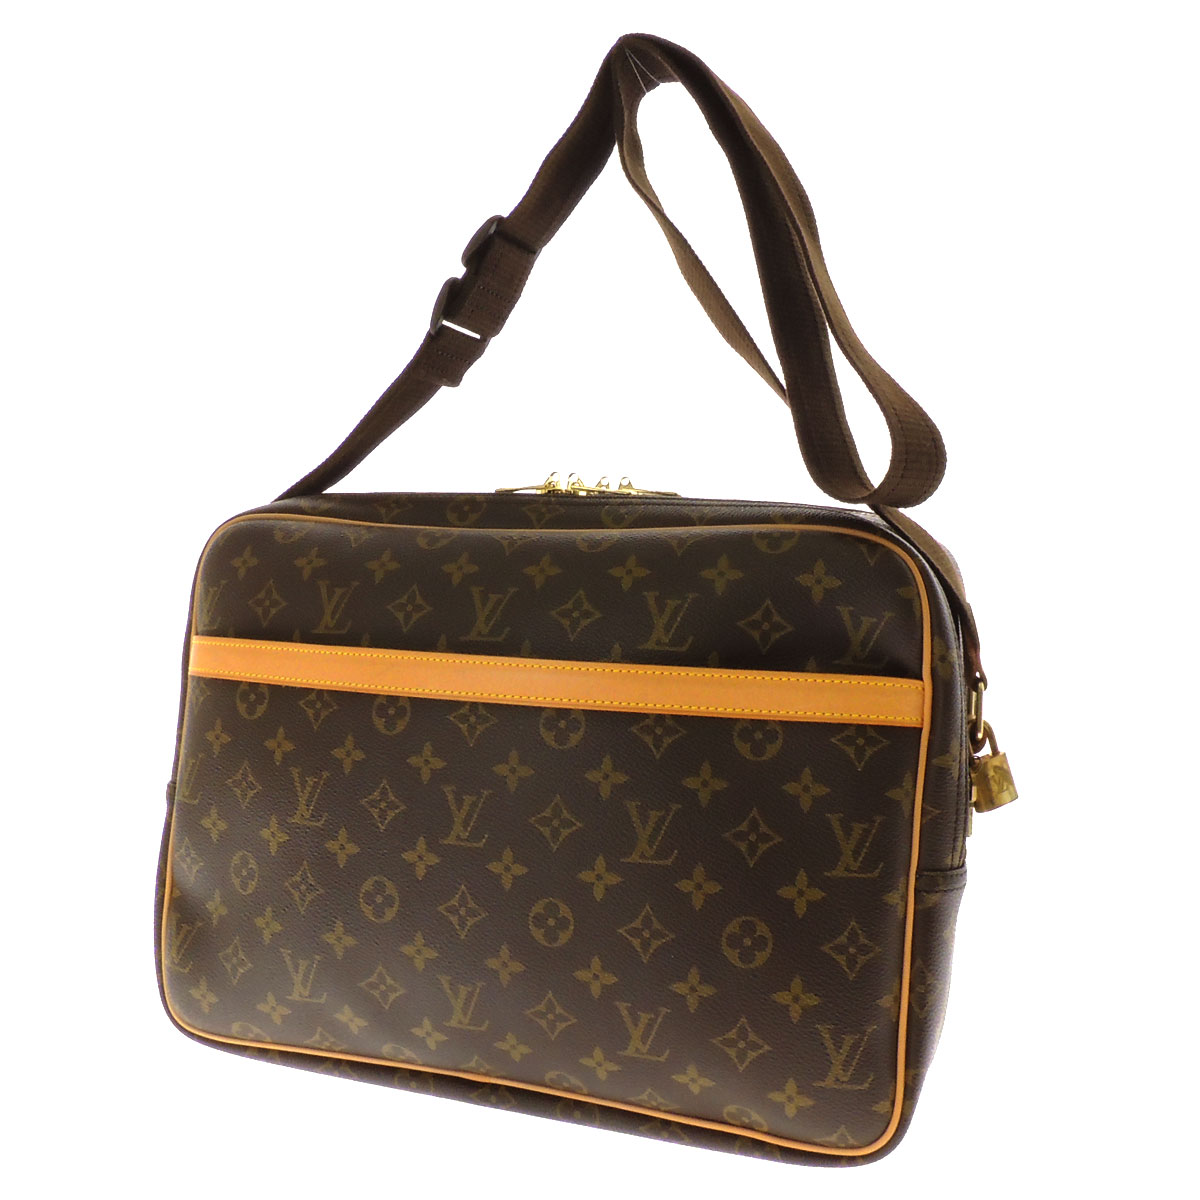 LOUIS VUITTON reporter 37 M45252 shoulder bag monogram canvas unisex